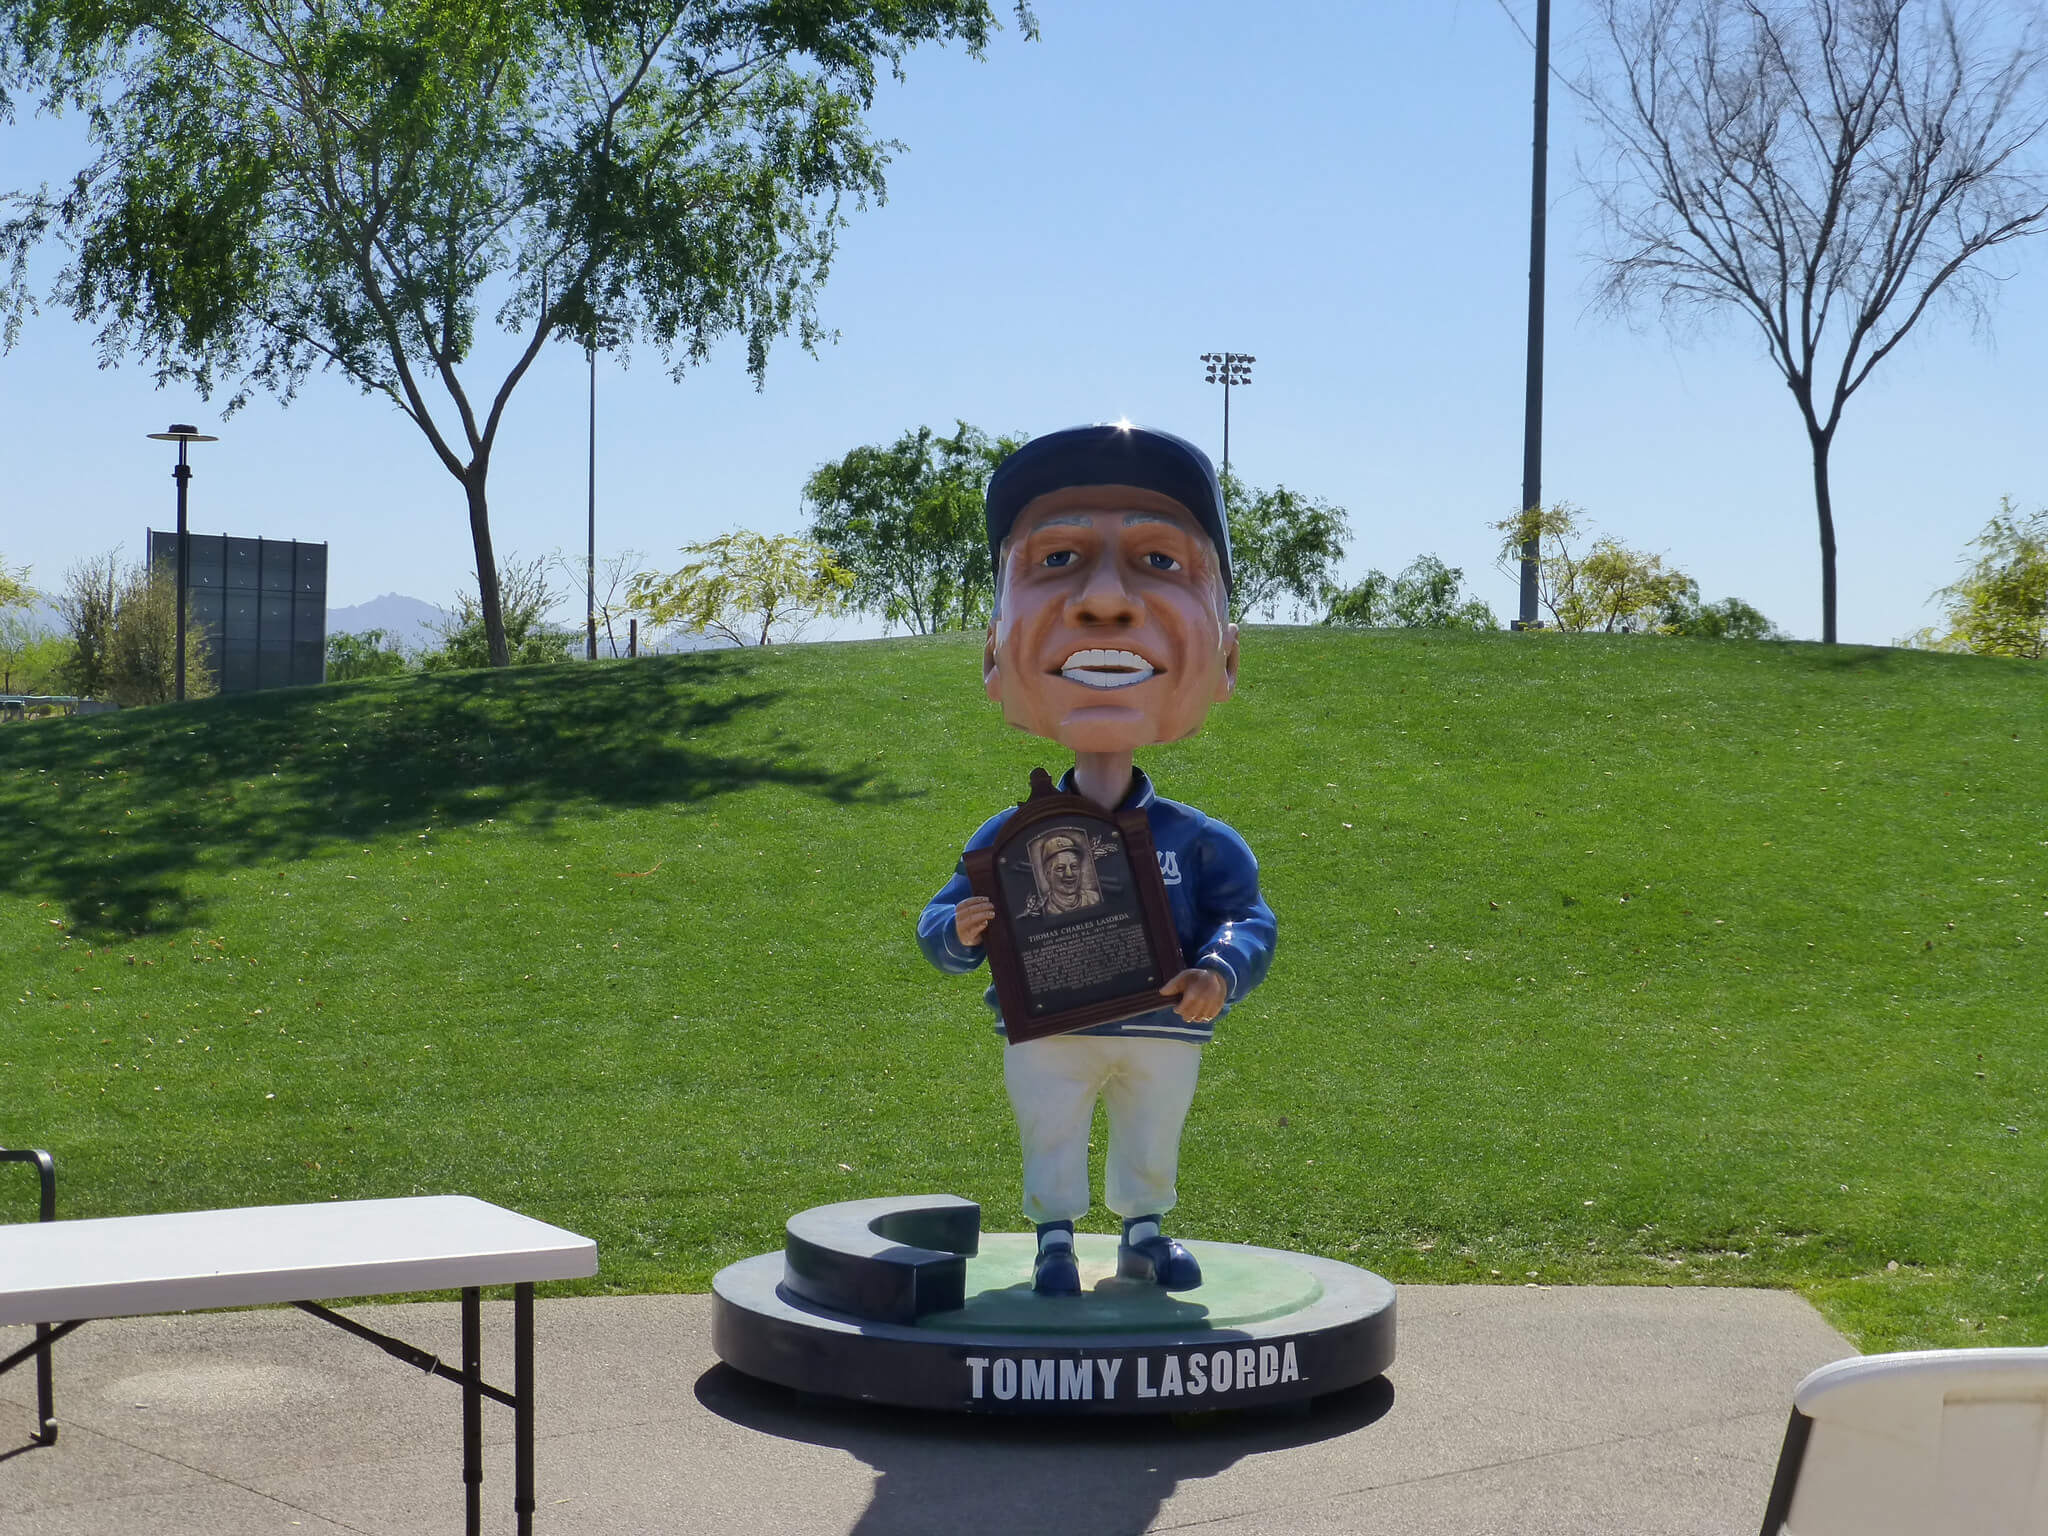 Los Angeles Dodgers Spring Training Camelback Ranch Tommy Lasorda Bobblehead